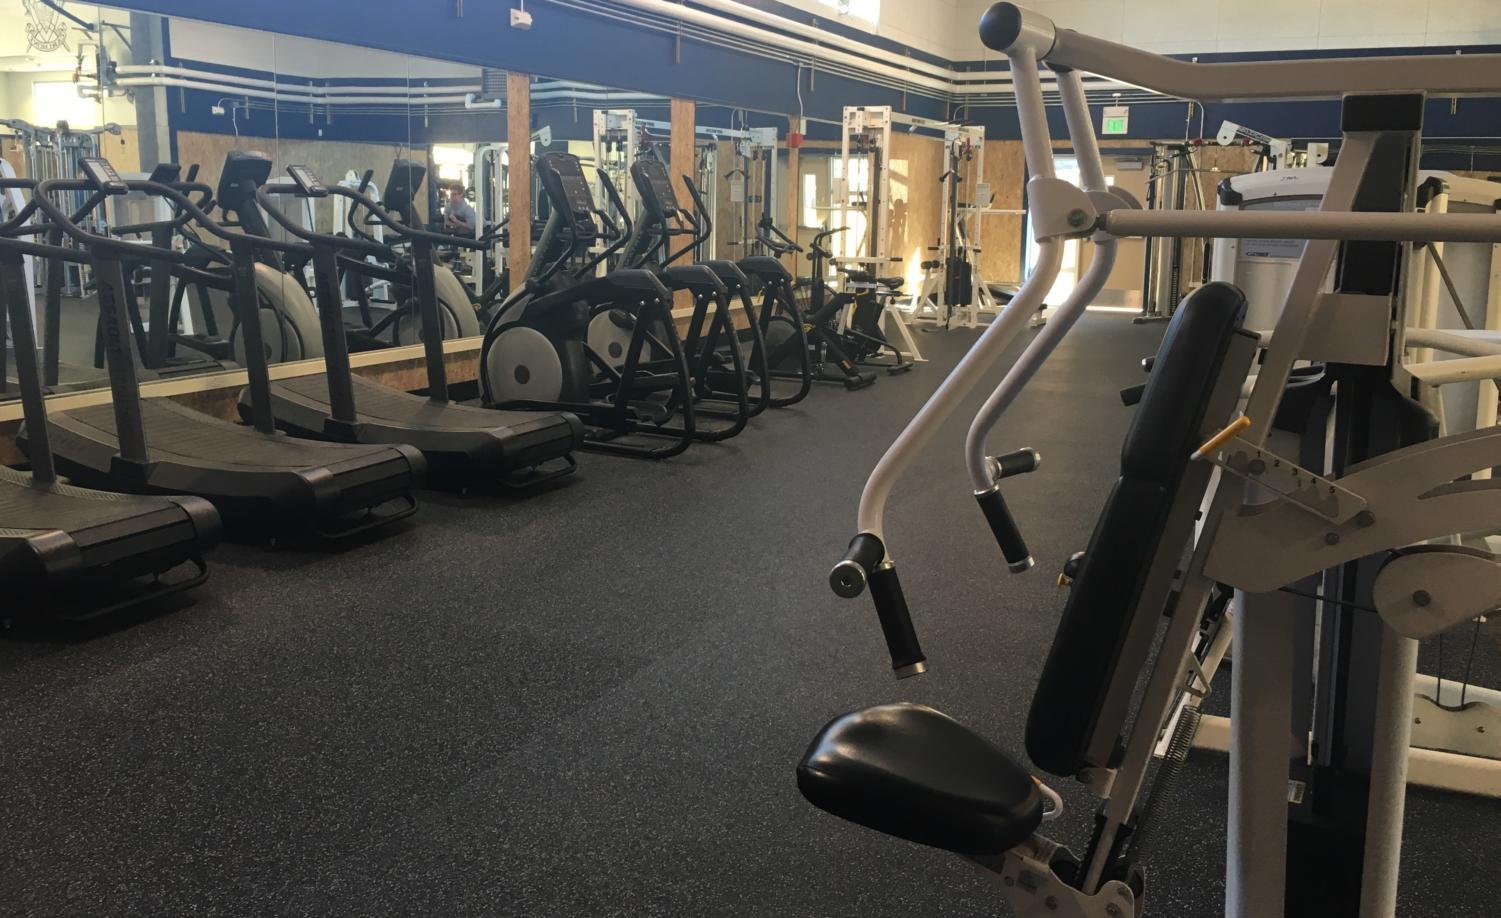 Students are free to utilize all of the equipment in the new weight room facility.